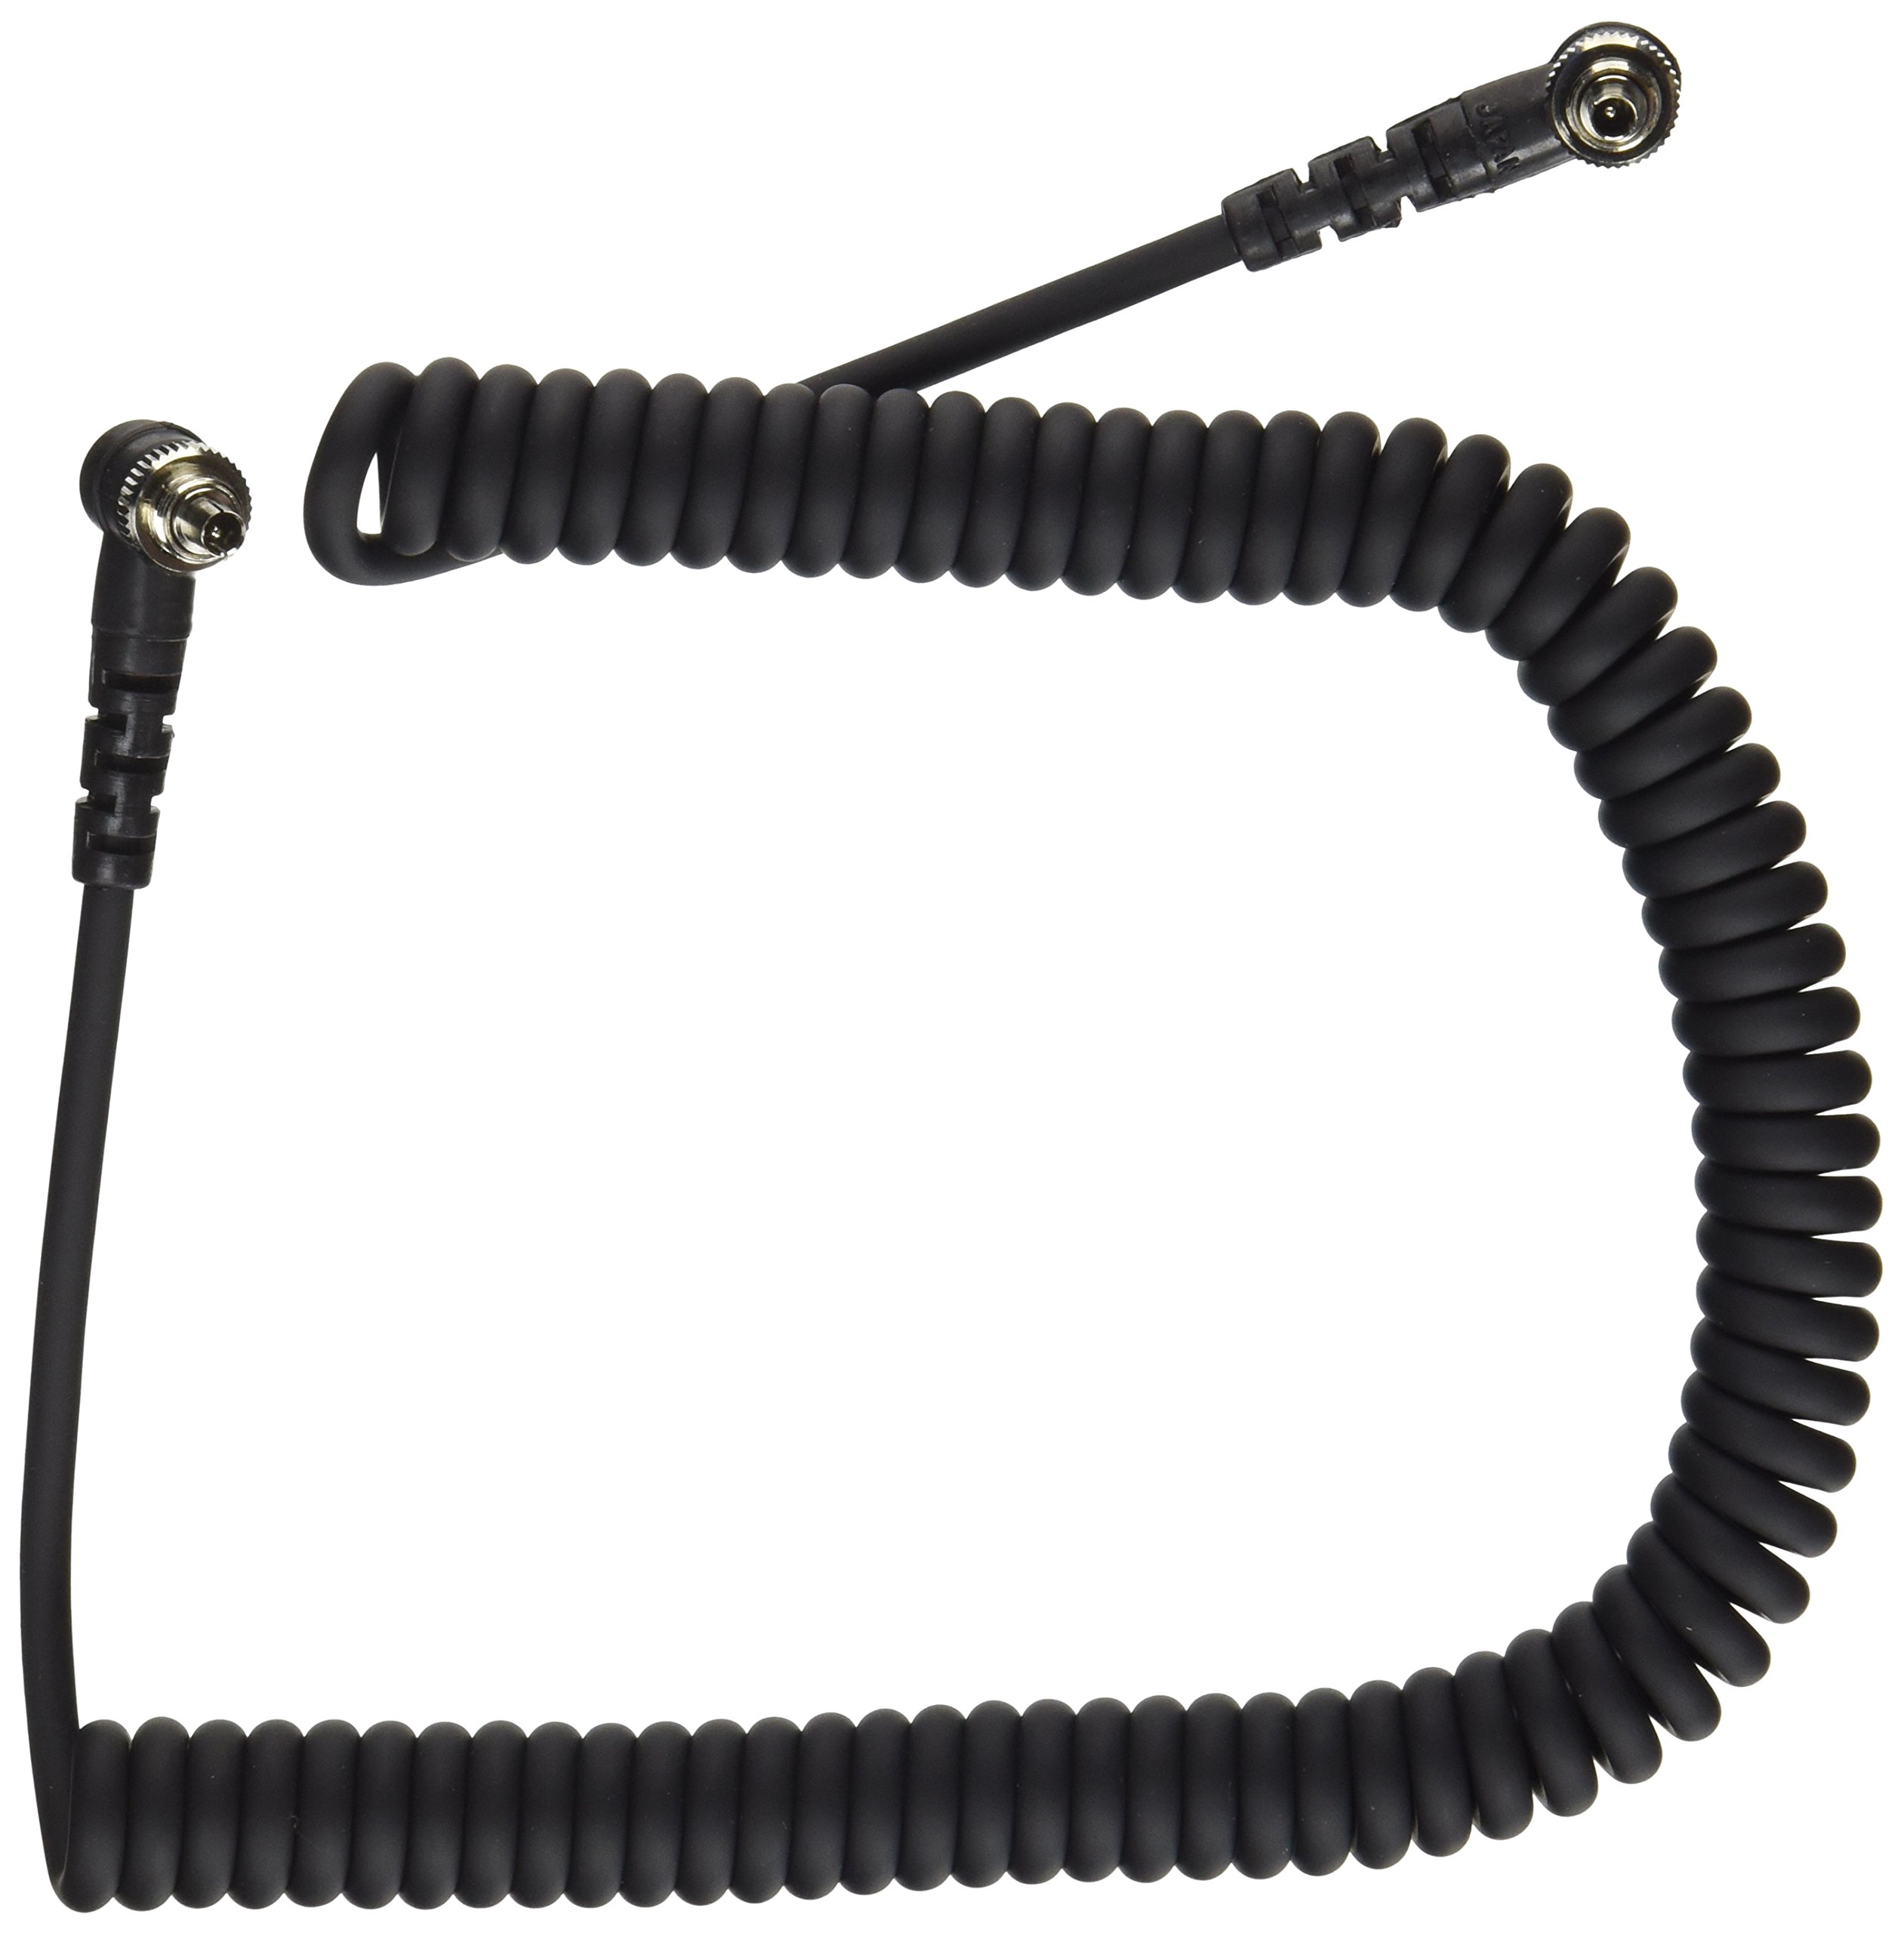 Nikon SC-15 3' Coiled Sync Cord, PC Male to PC Male. by Nikon